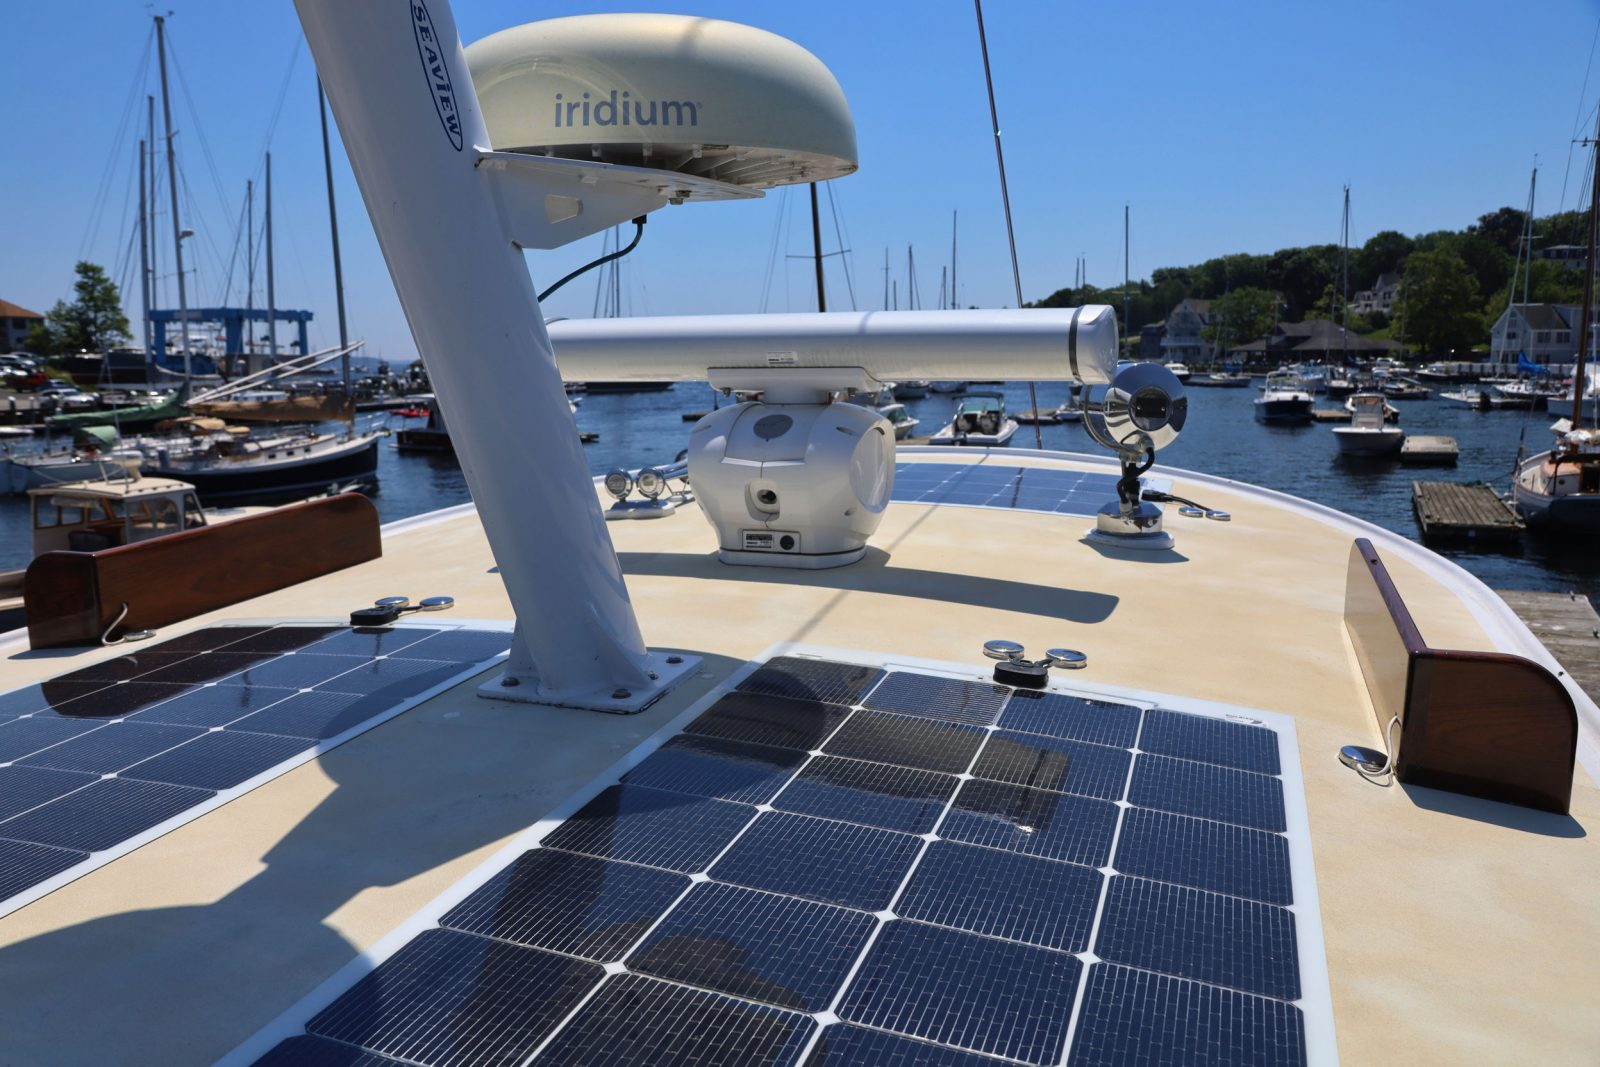 Bliss got more Solbian solar panels for 2019